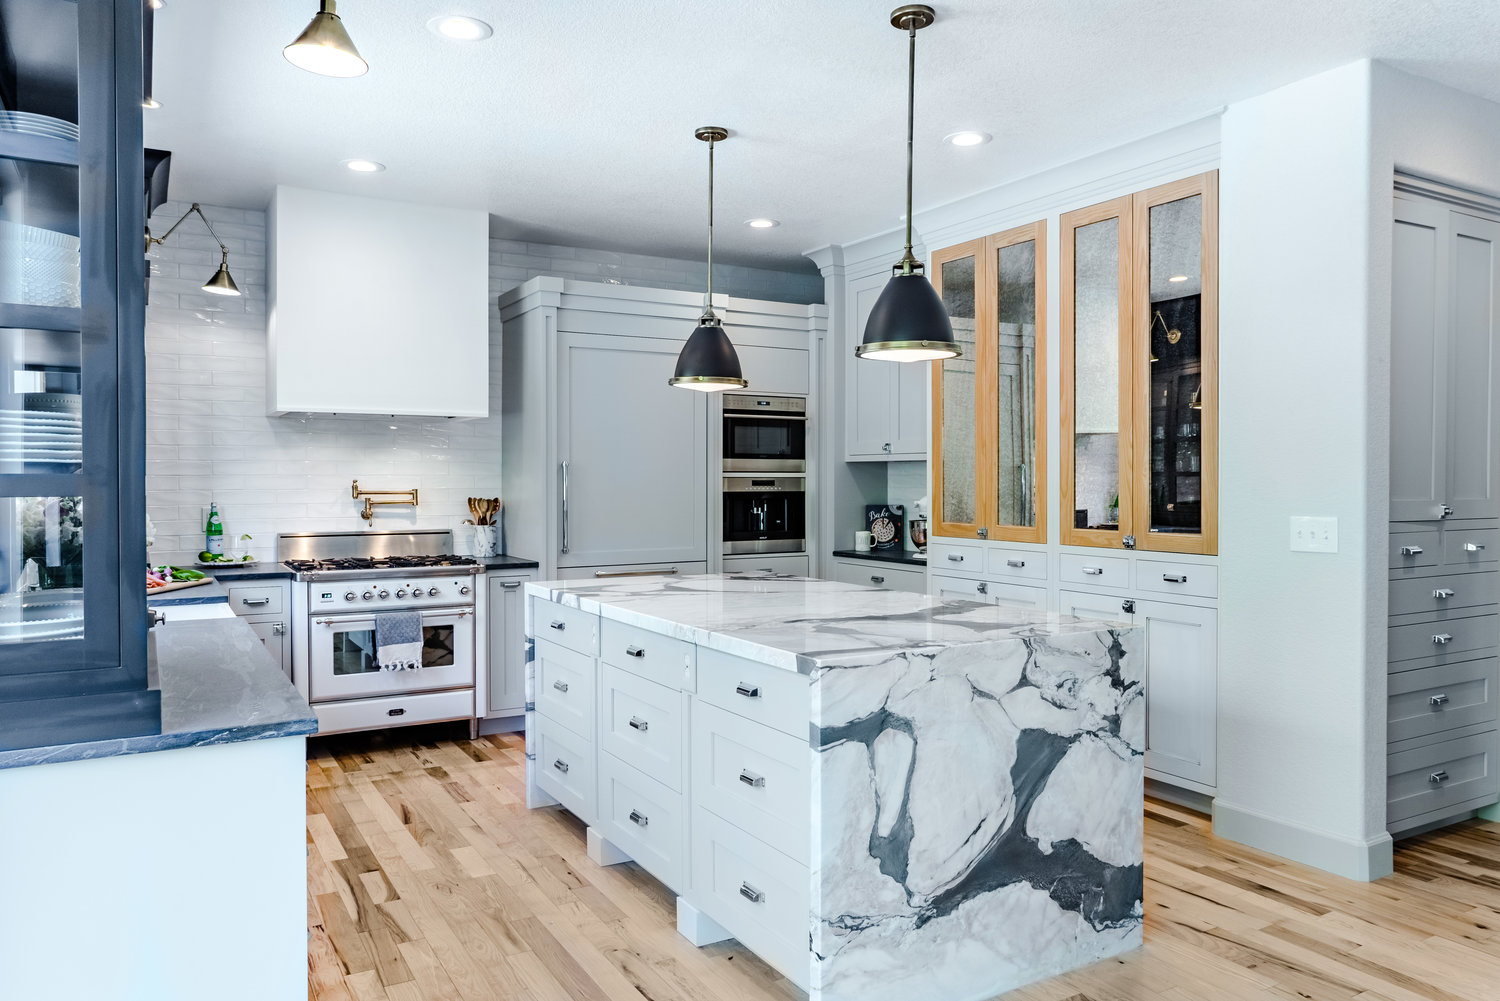 Industrial French Kitchen Project takes the Gold with help from ILVE